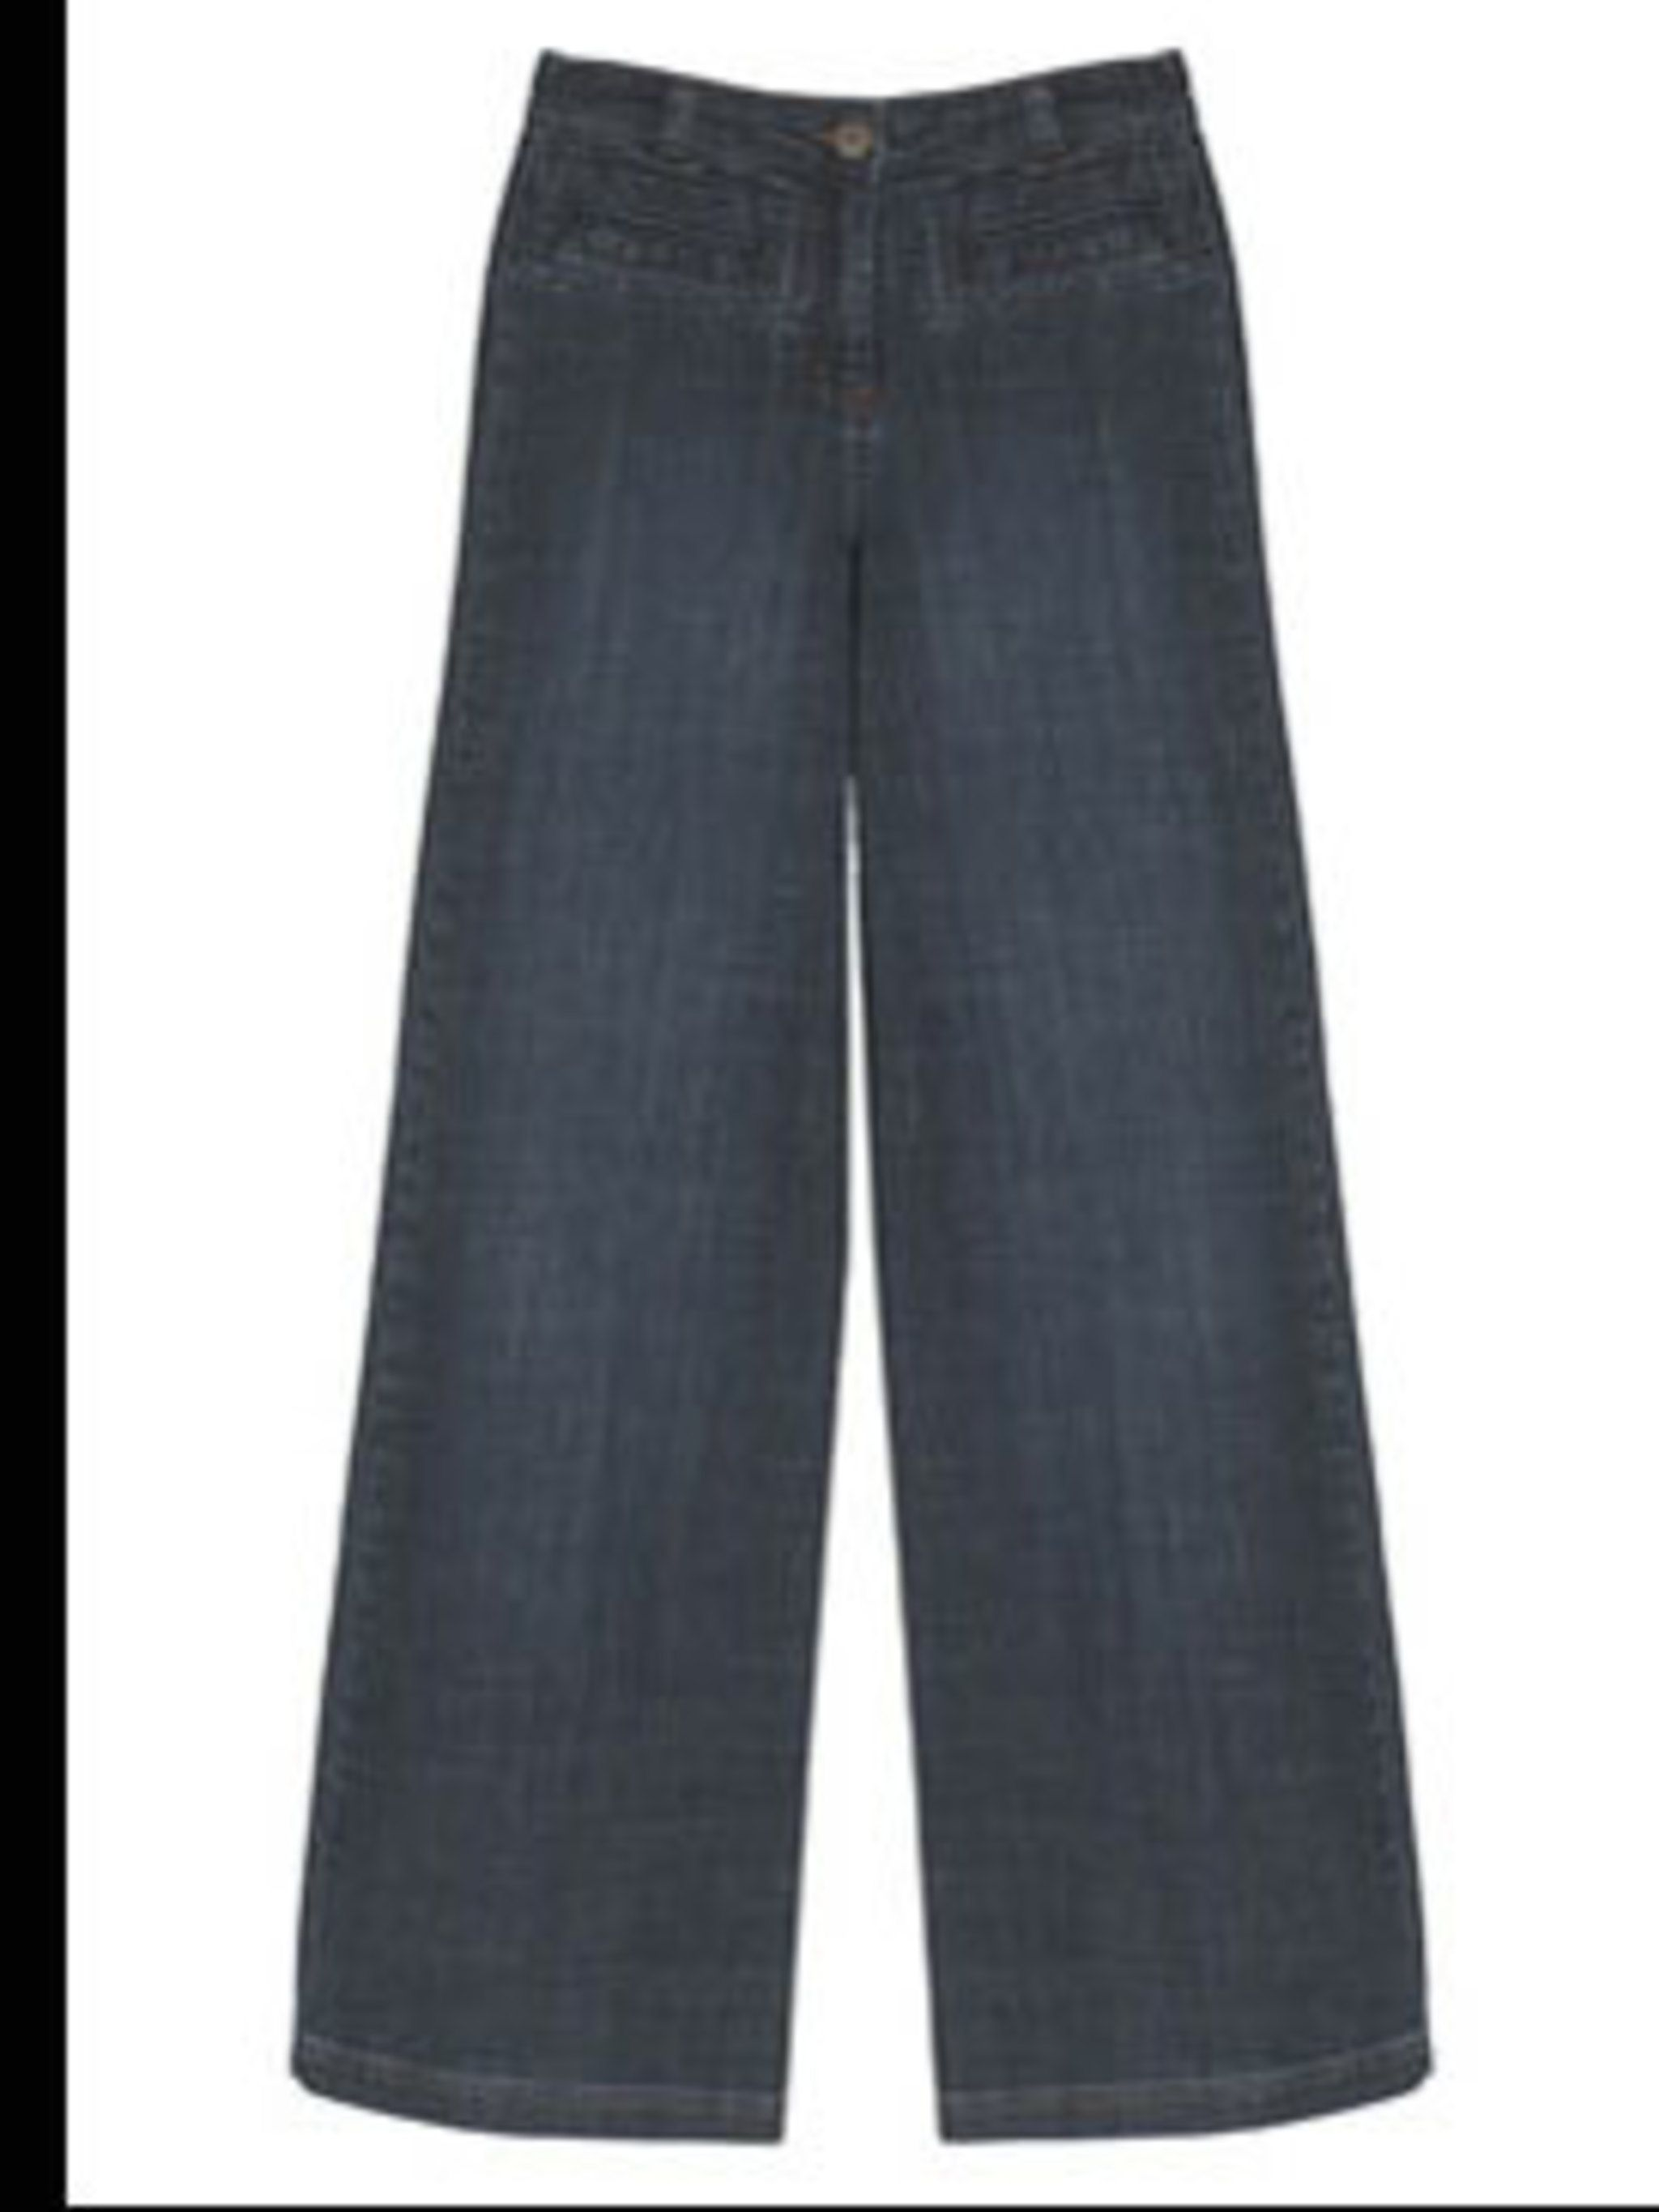 <p>Wide Leg Jeans, £40 from Wallis for stockists call 0845 121 4520</p>